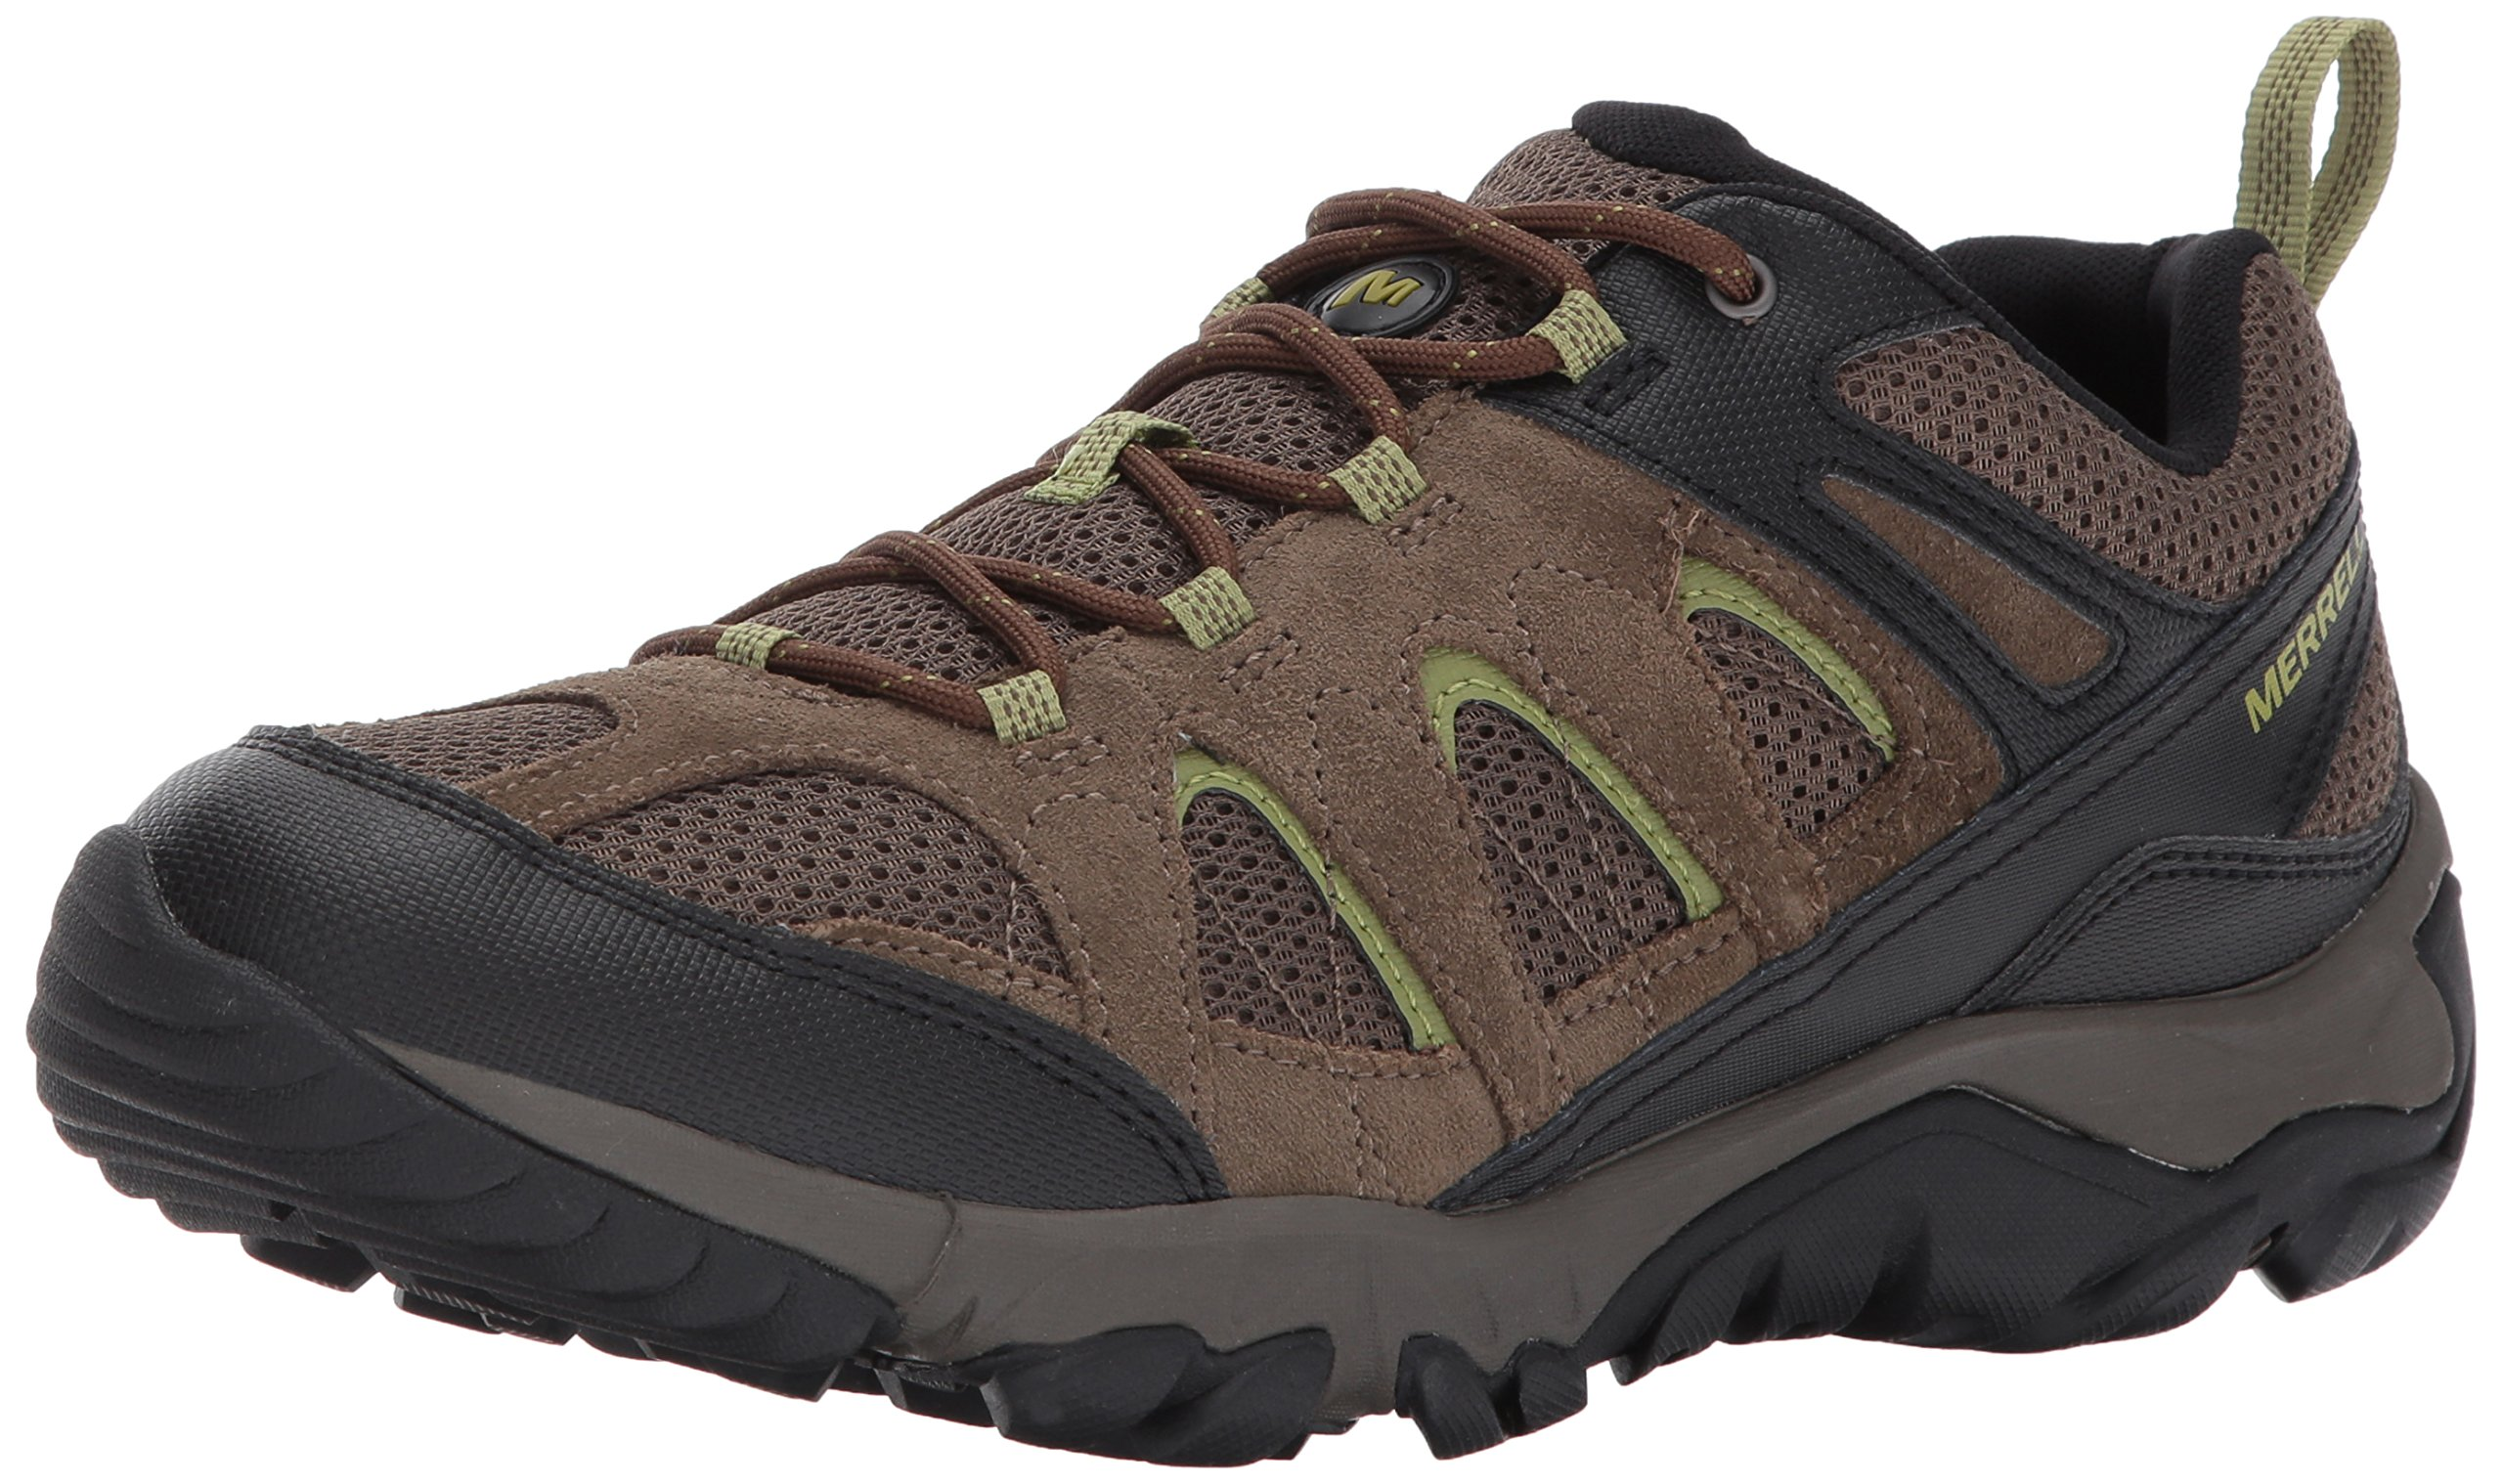 Merrell Men's Outmost Vent Hiking Boot, Boulder, 14.0 M US